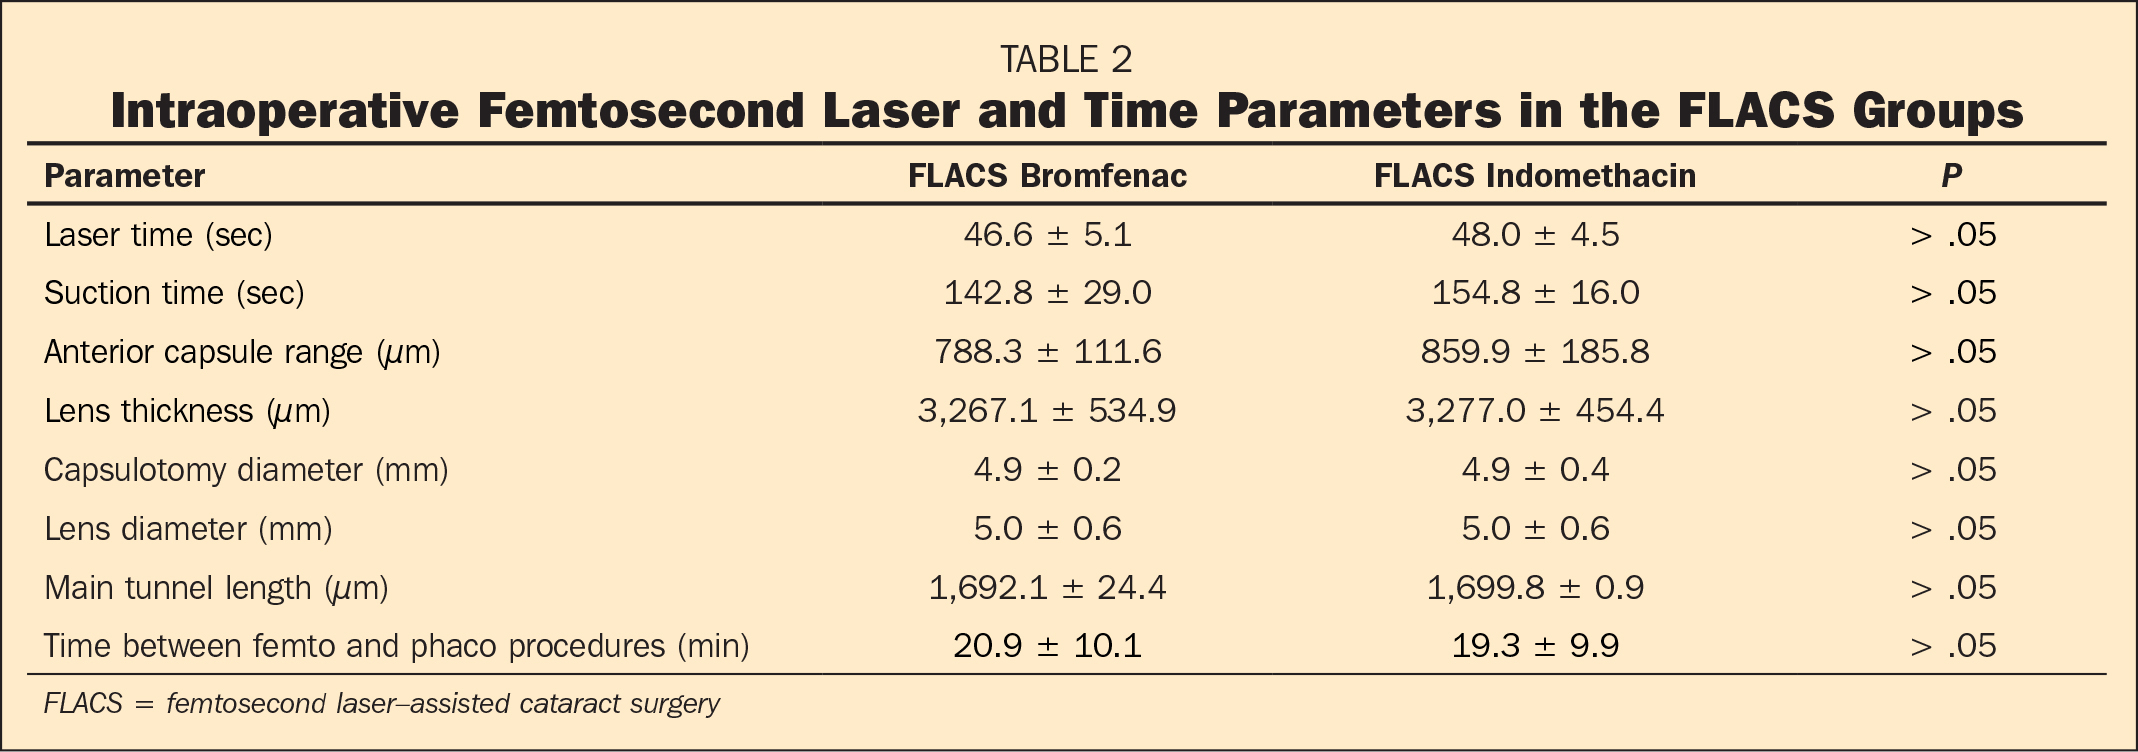 Intraoperative Femtosecond Laser and Time Parameters in the FLACS Groups